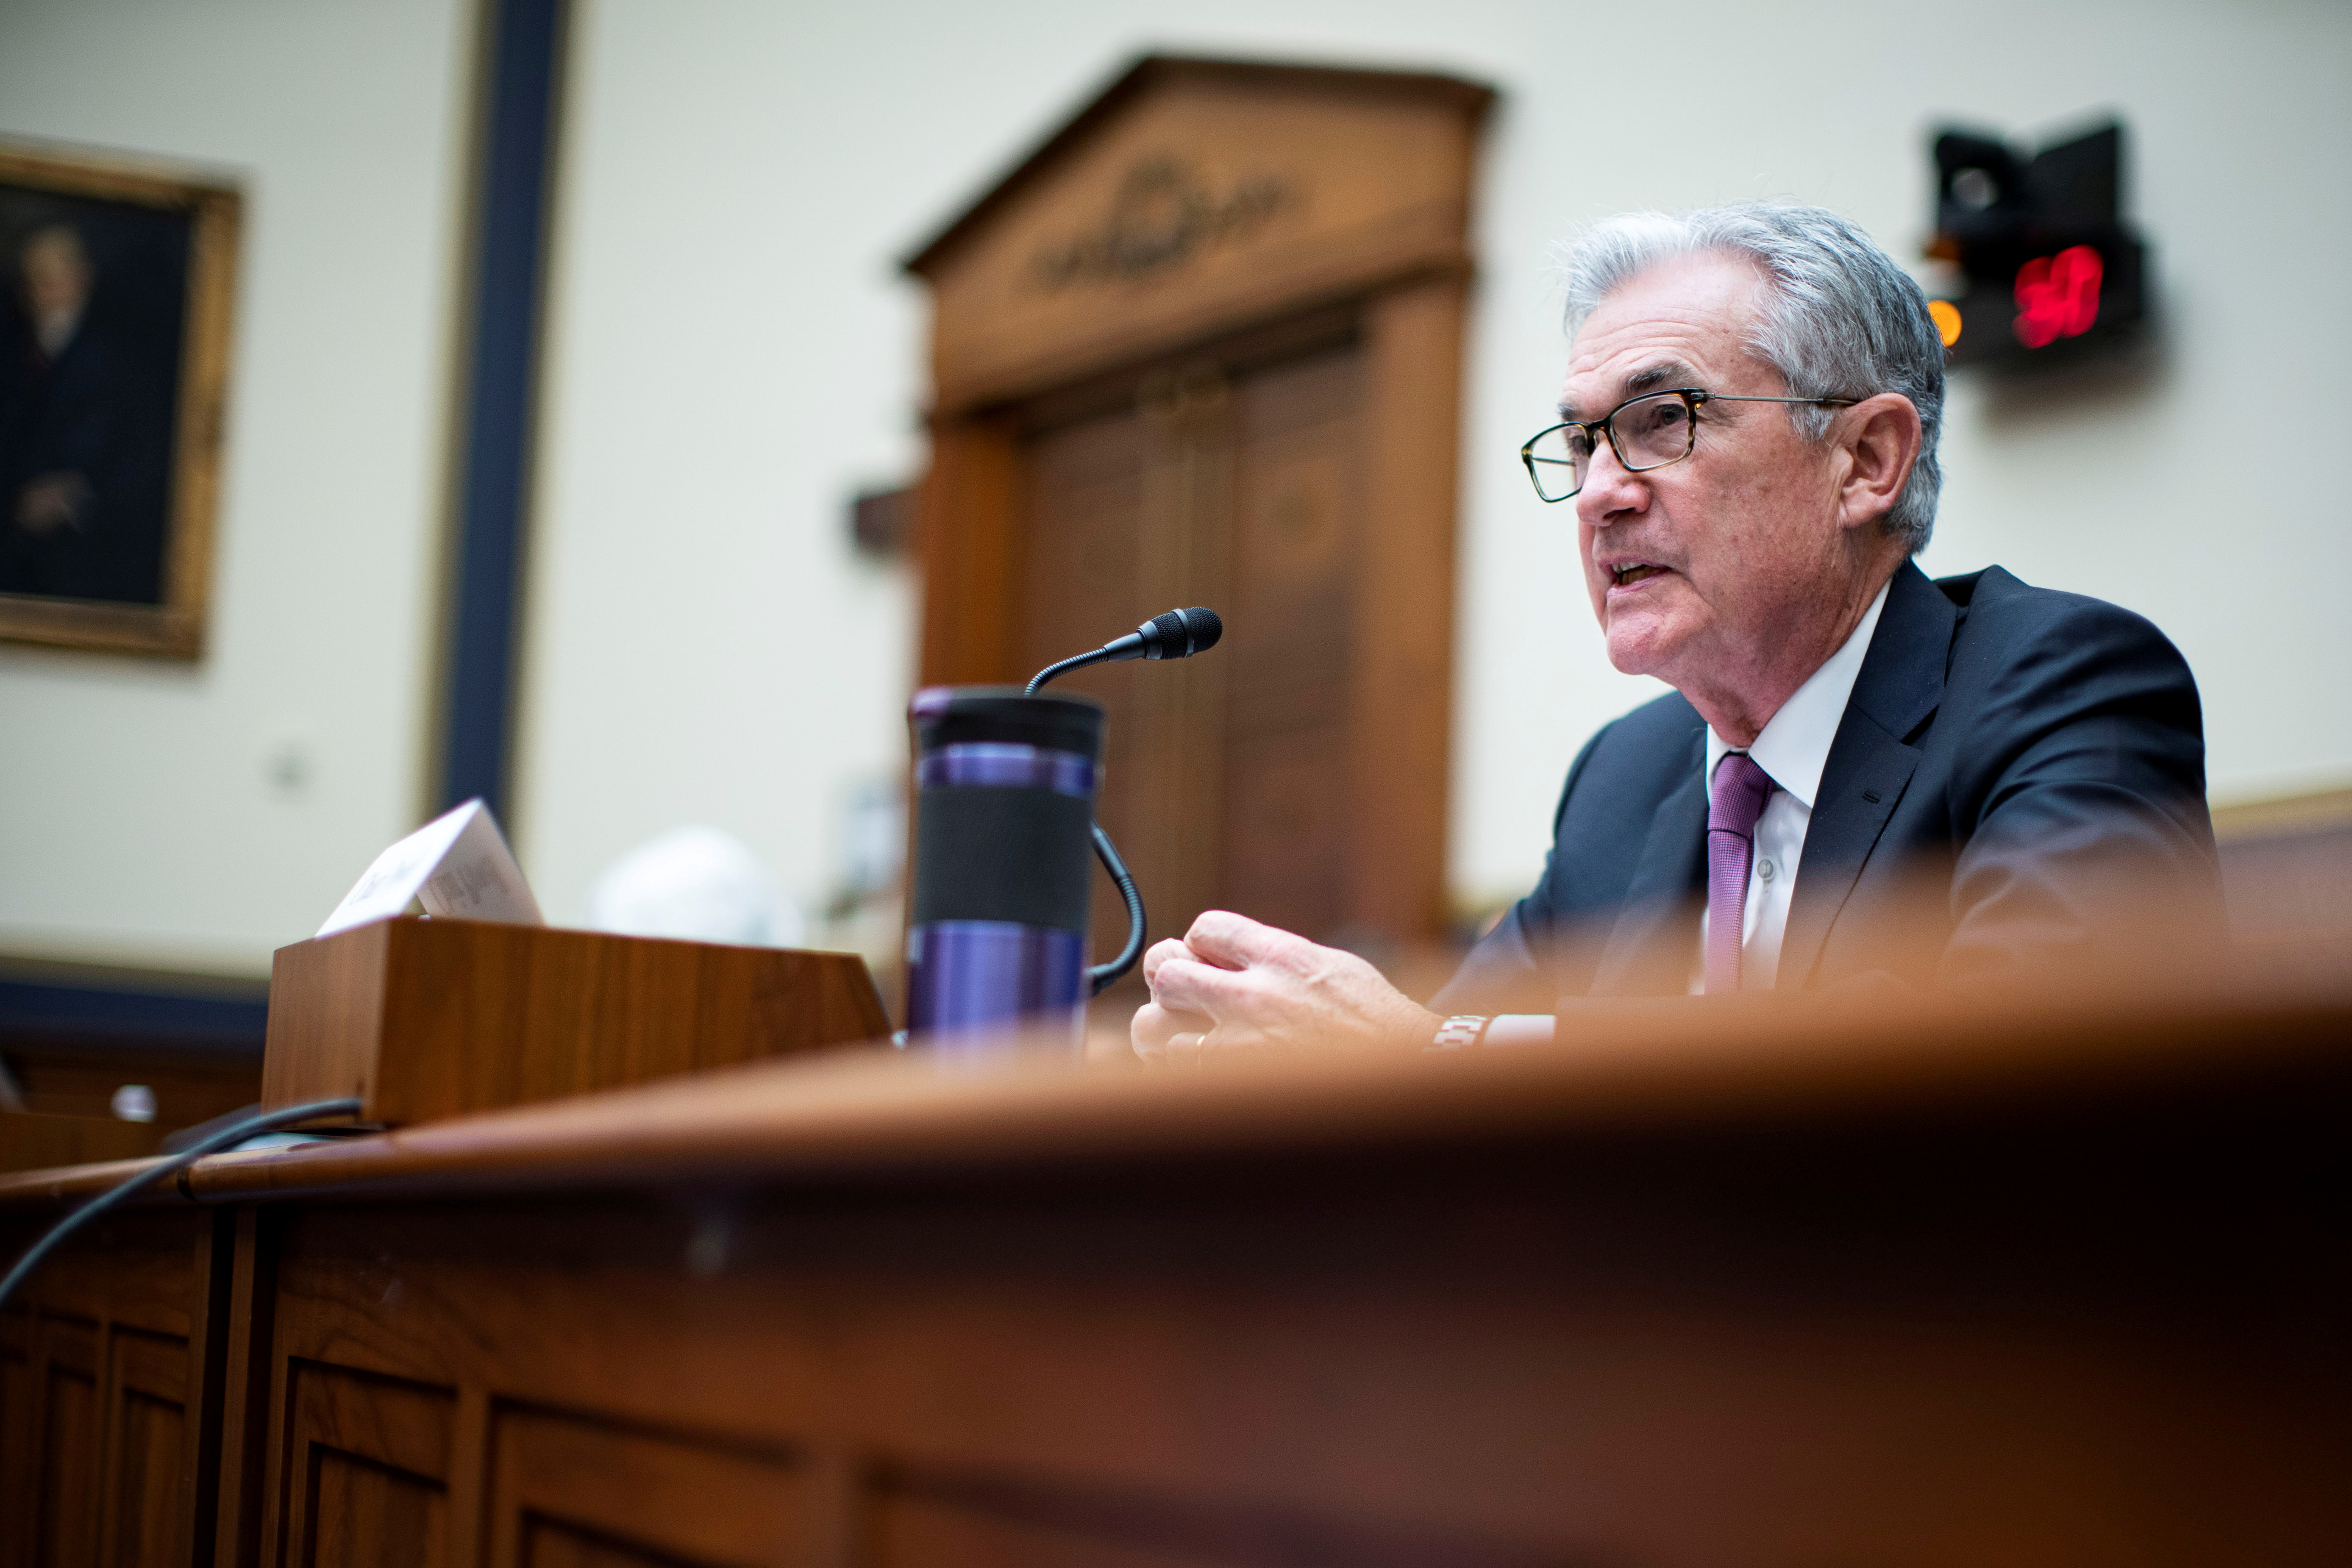 Federal Reserve Chairman Jerome Powell attends the House Financial Services Committee hearing on Capitol Hill in Washington, U.S., September 30, 2021.  Al Drago/Pool via REUTERS/File Photo